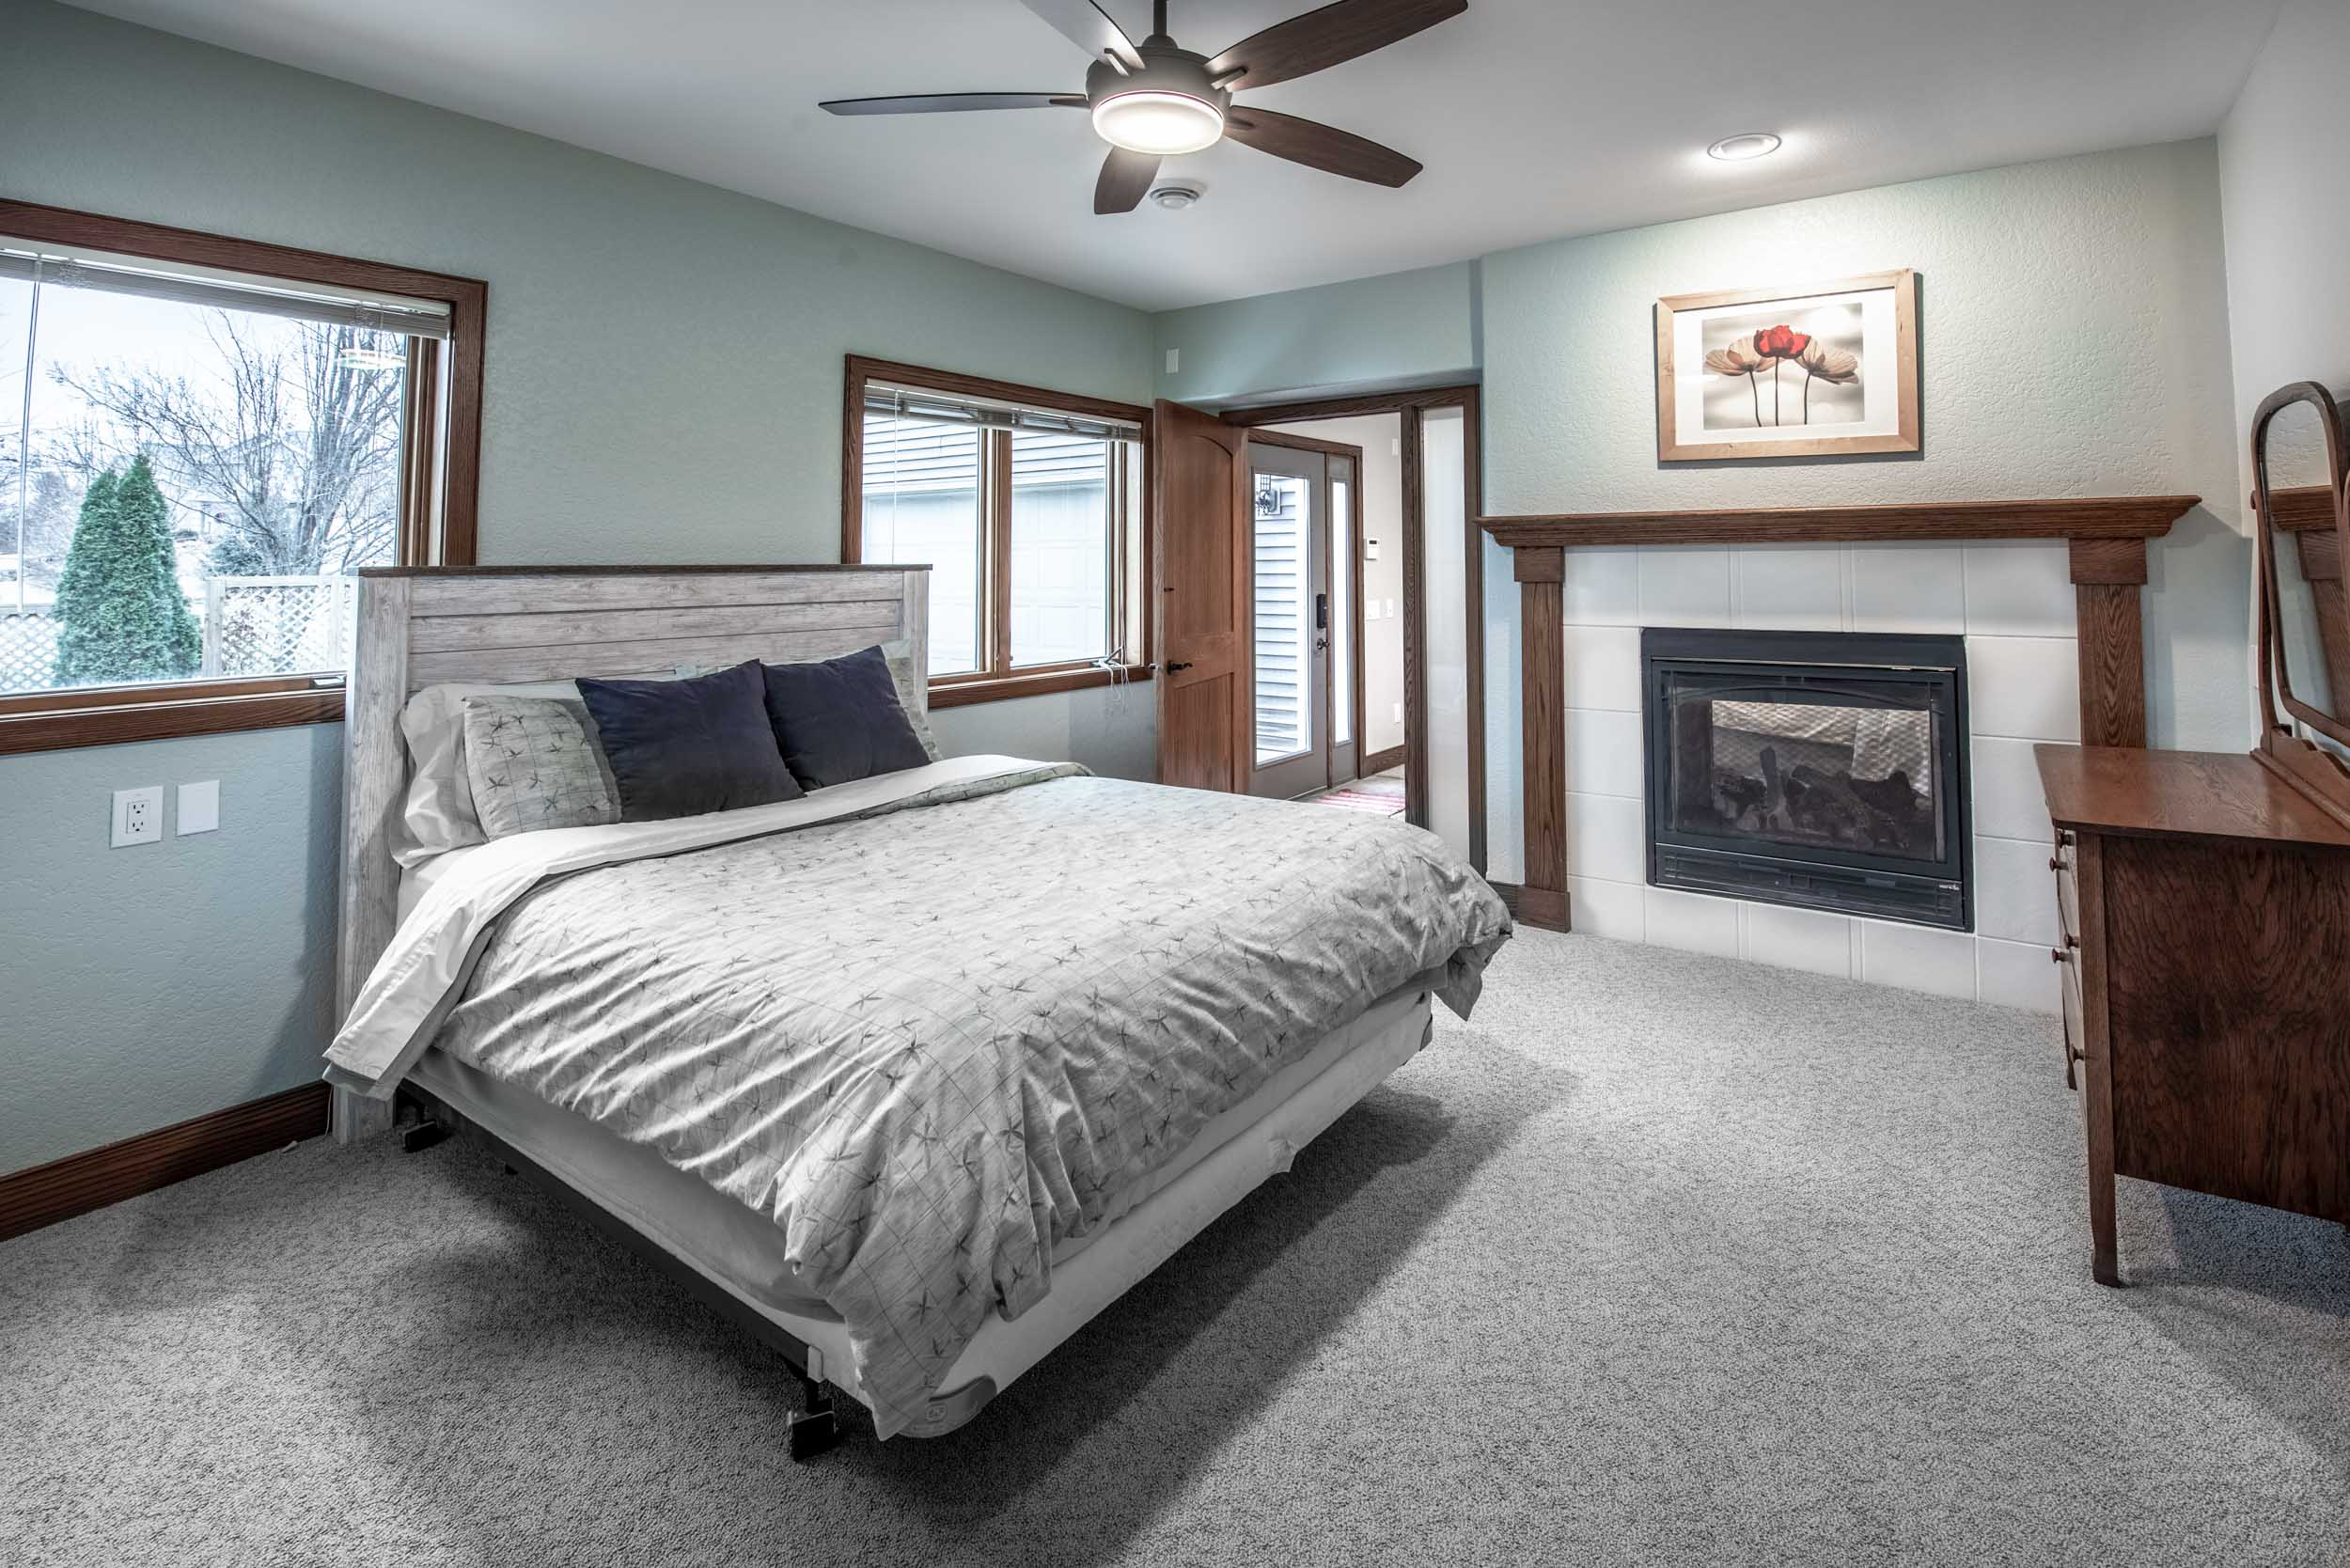 Finished Basement Guest Bedroom With Fireplace